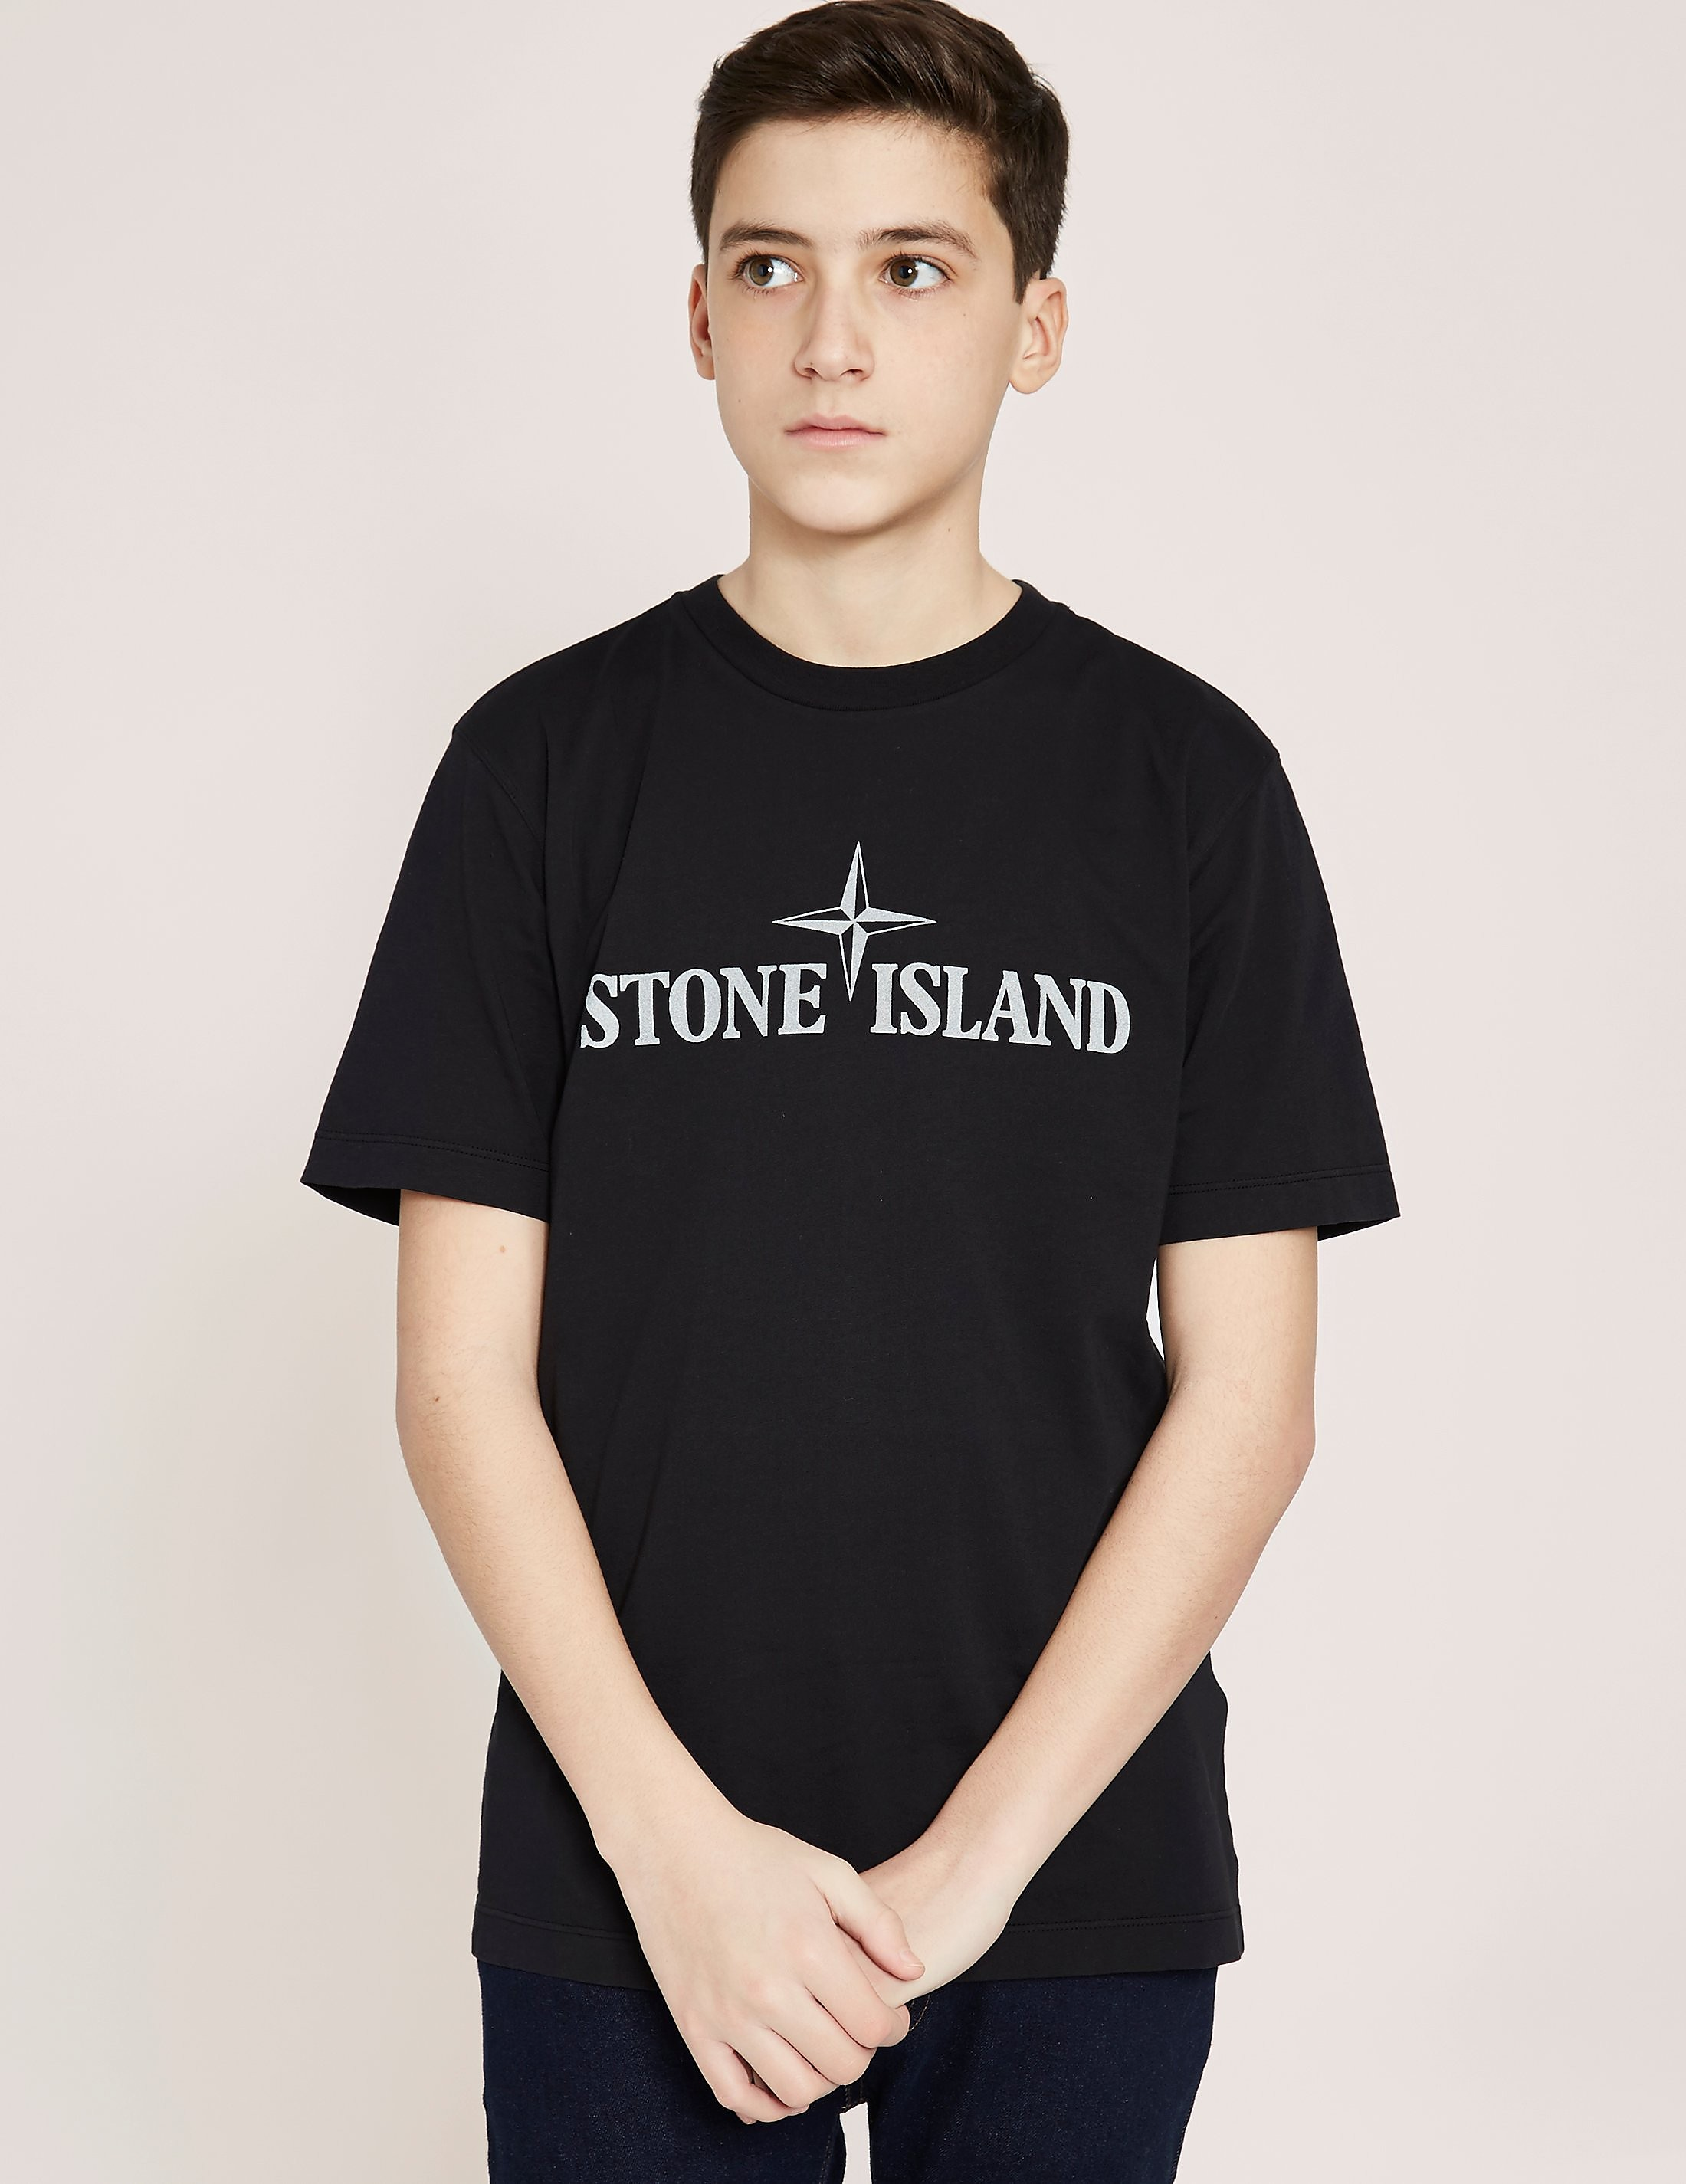 Stone Island Large Logo Short Sleeve T-Shirt